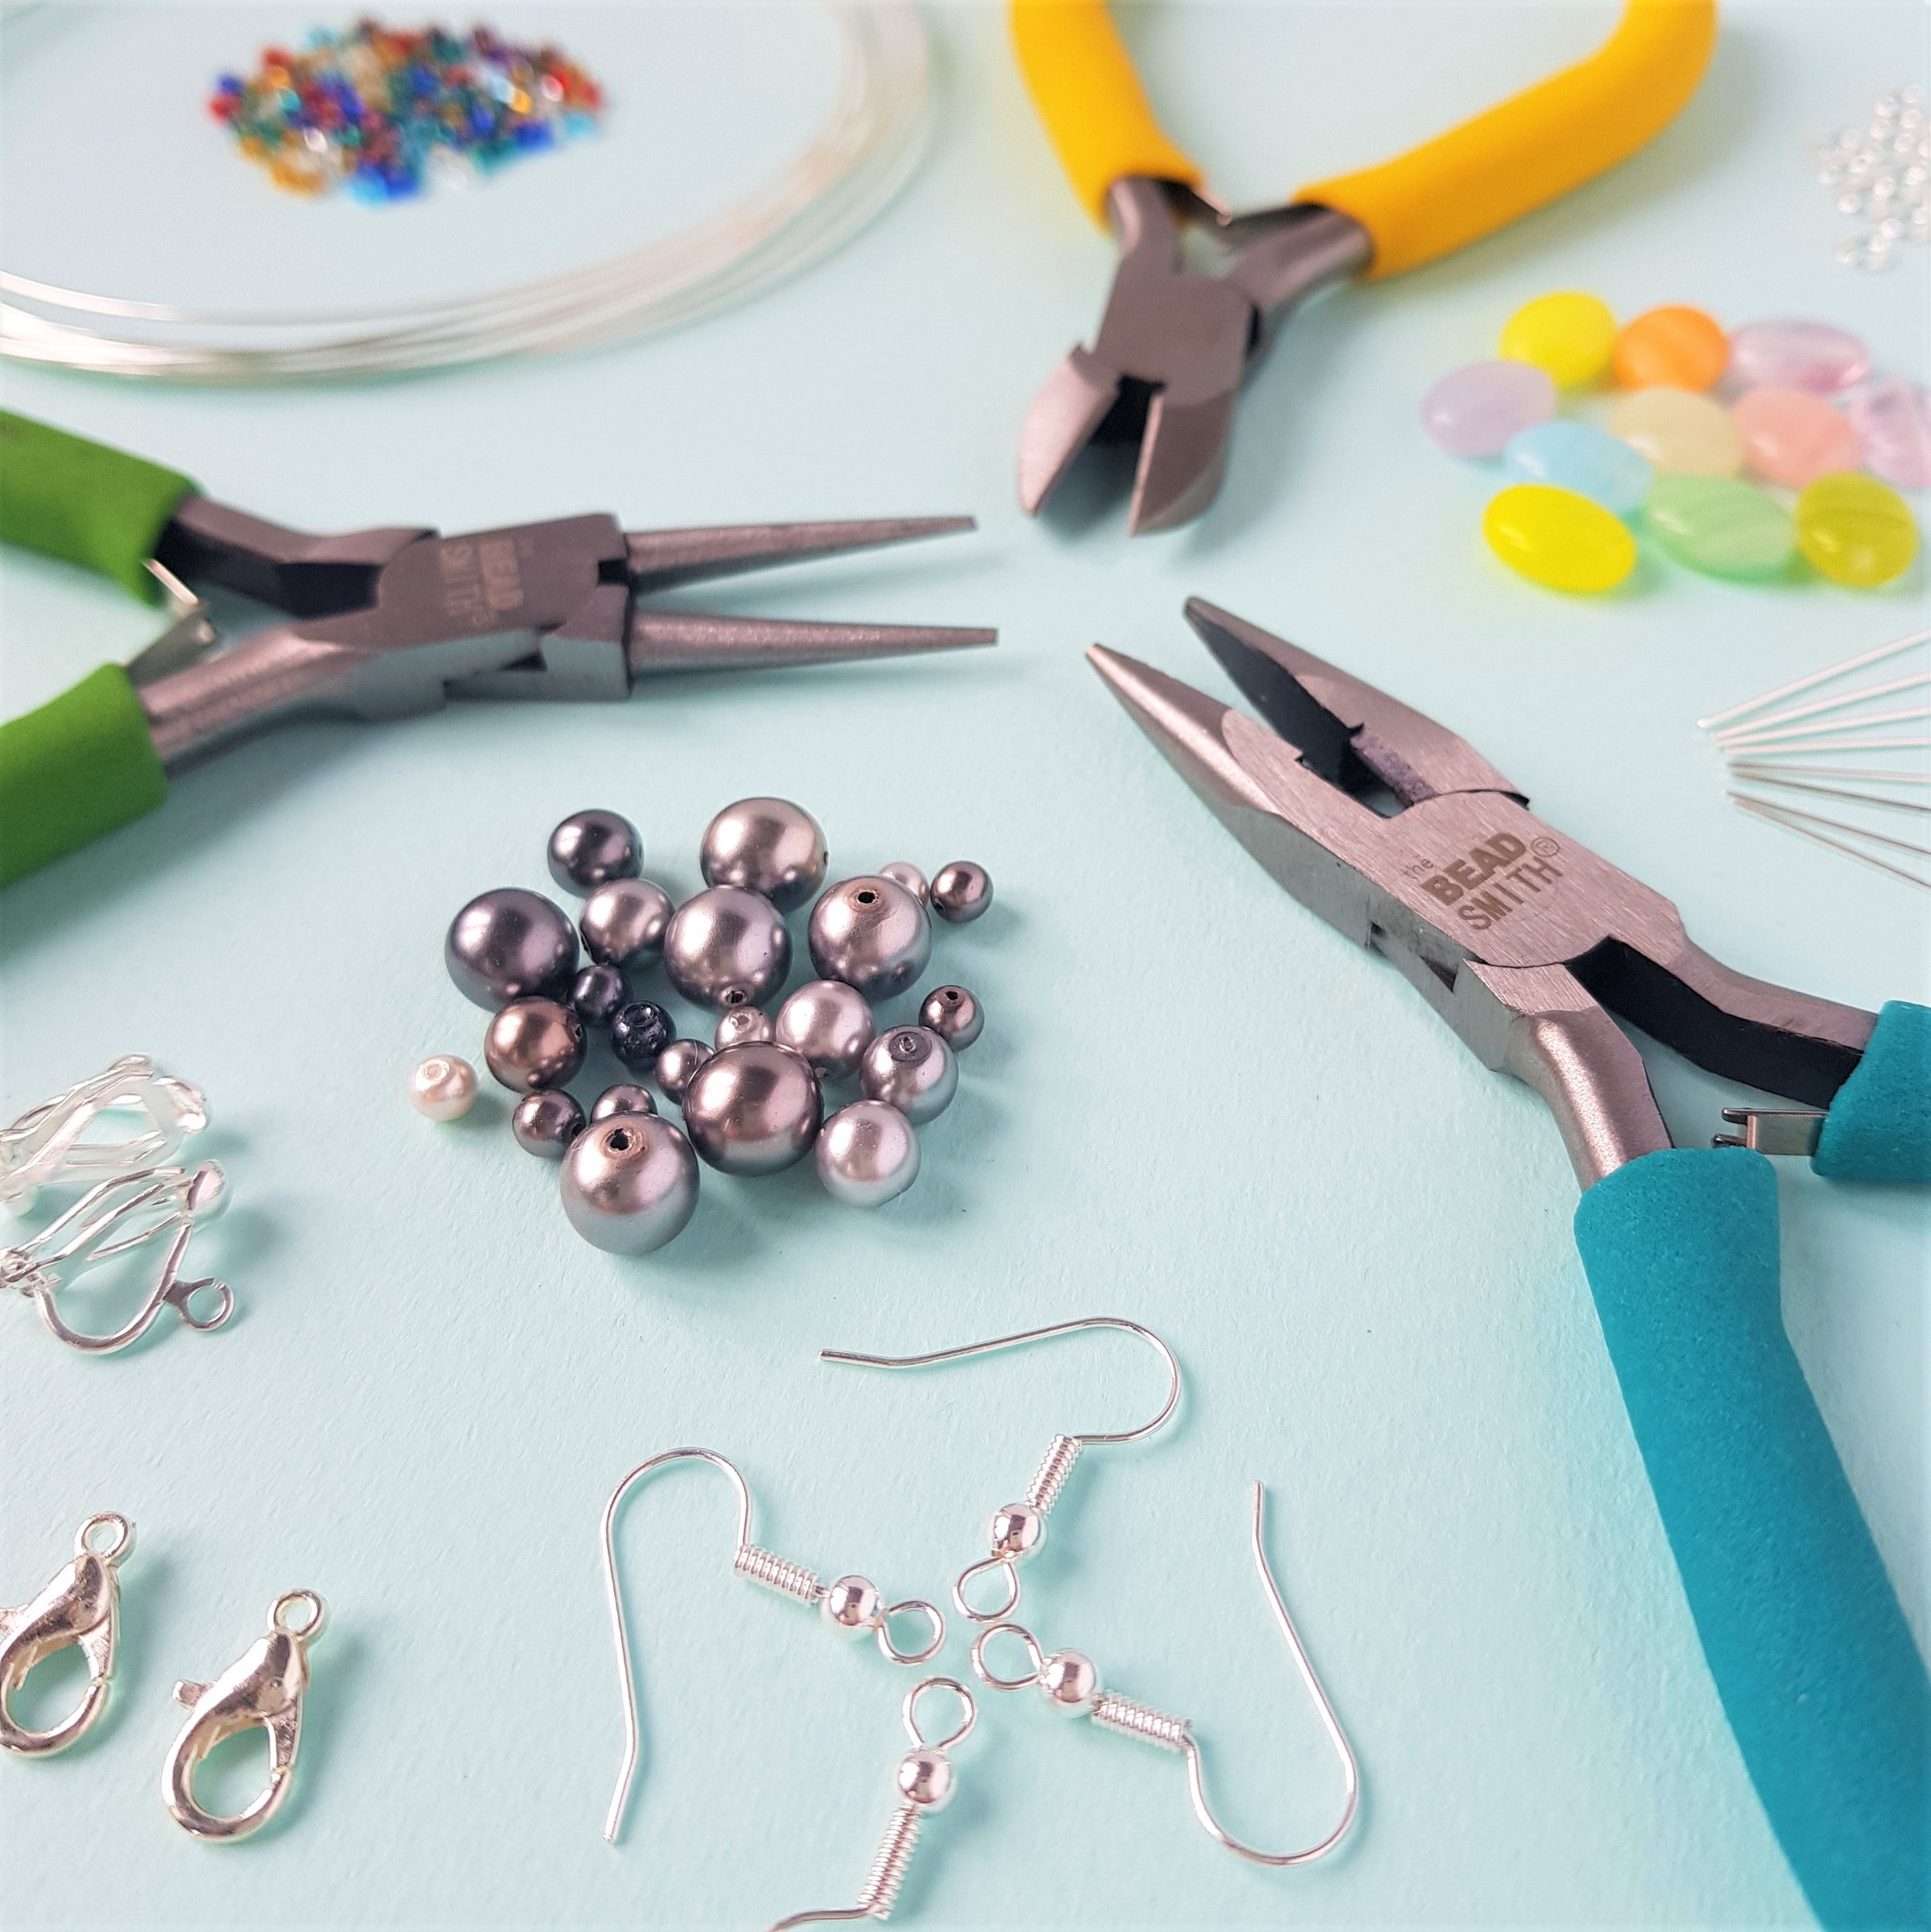 wire-jewellery-making-kit-contents.jpg